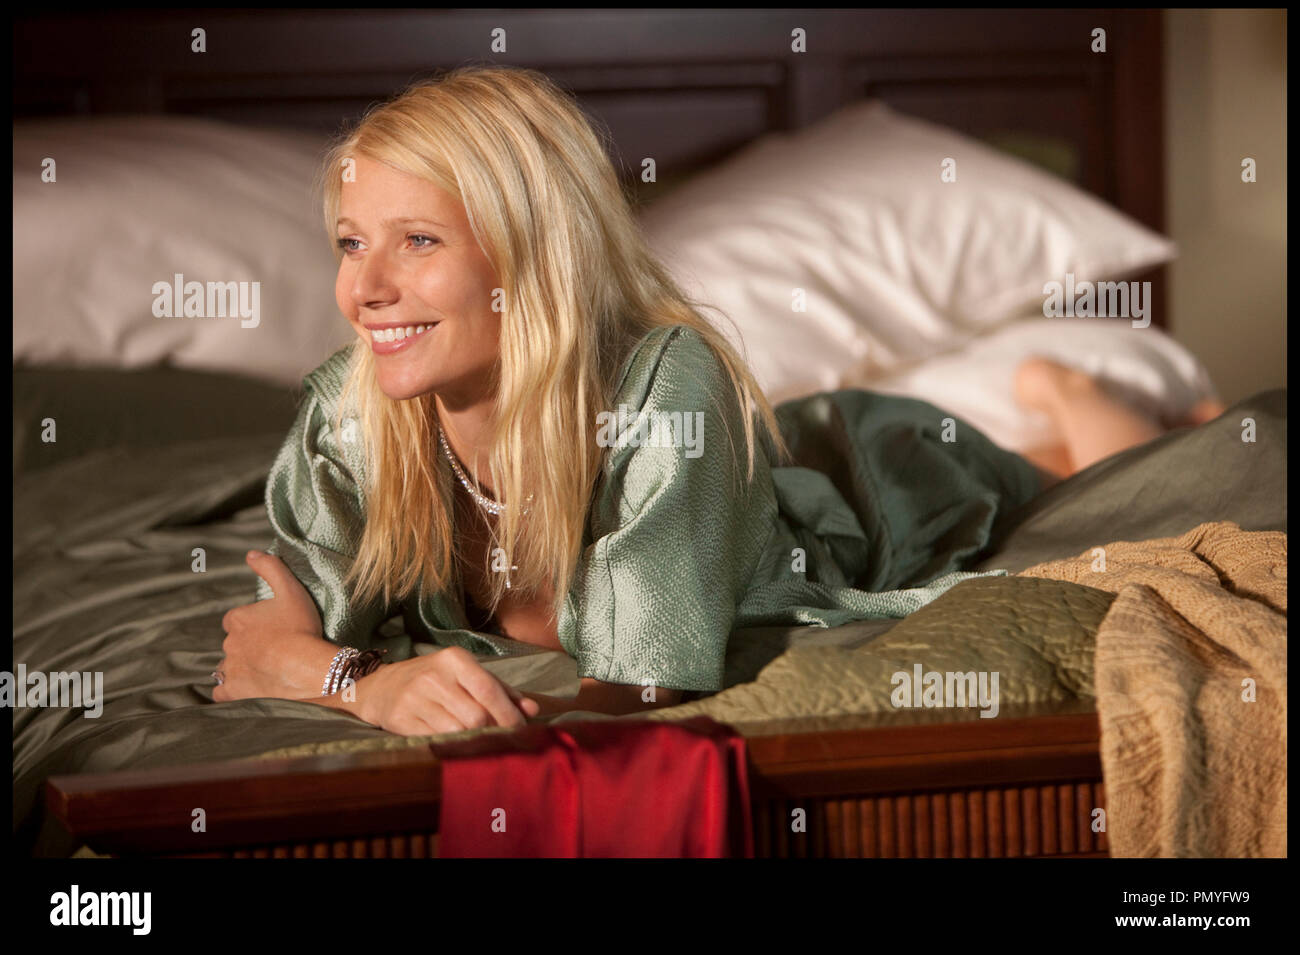 Prod DB © Screen Gems - Maguire Entertainment / DR COUNTRY STRONG